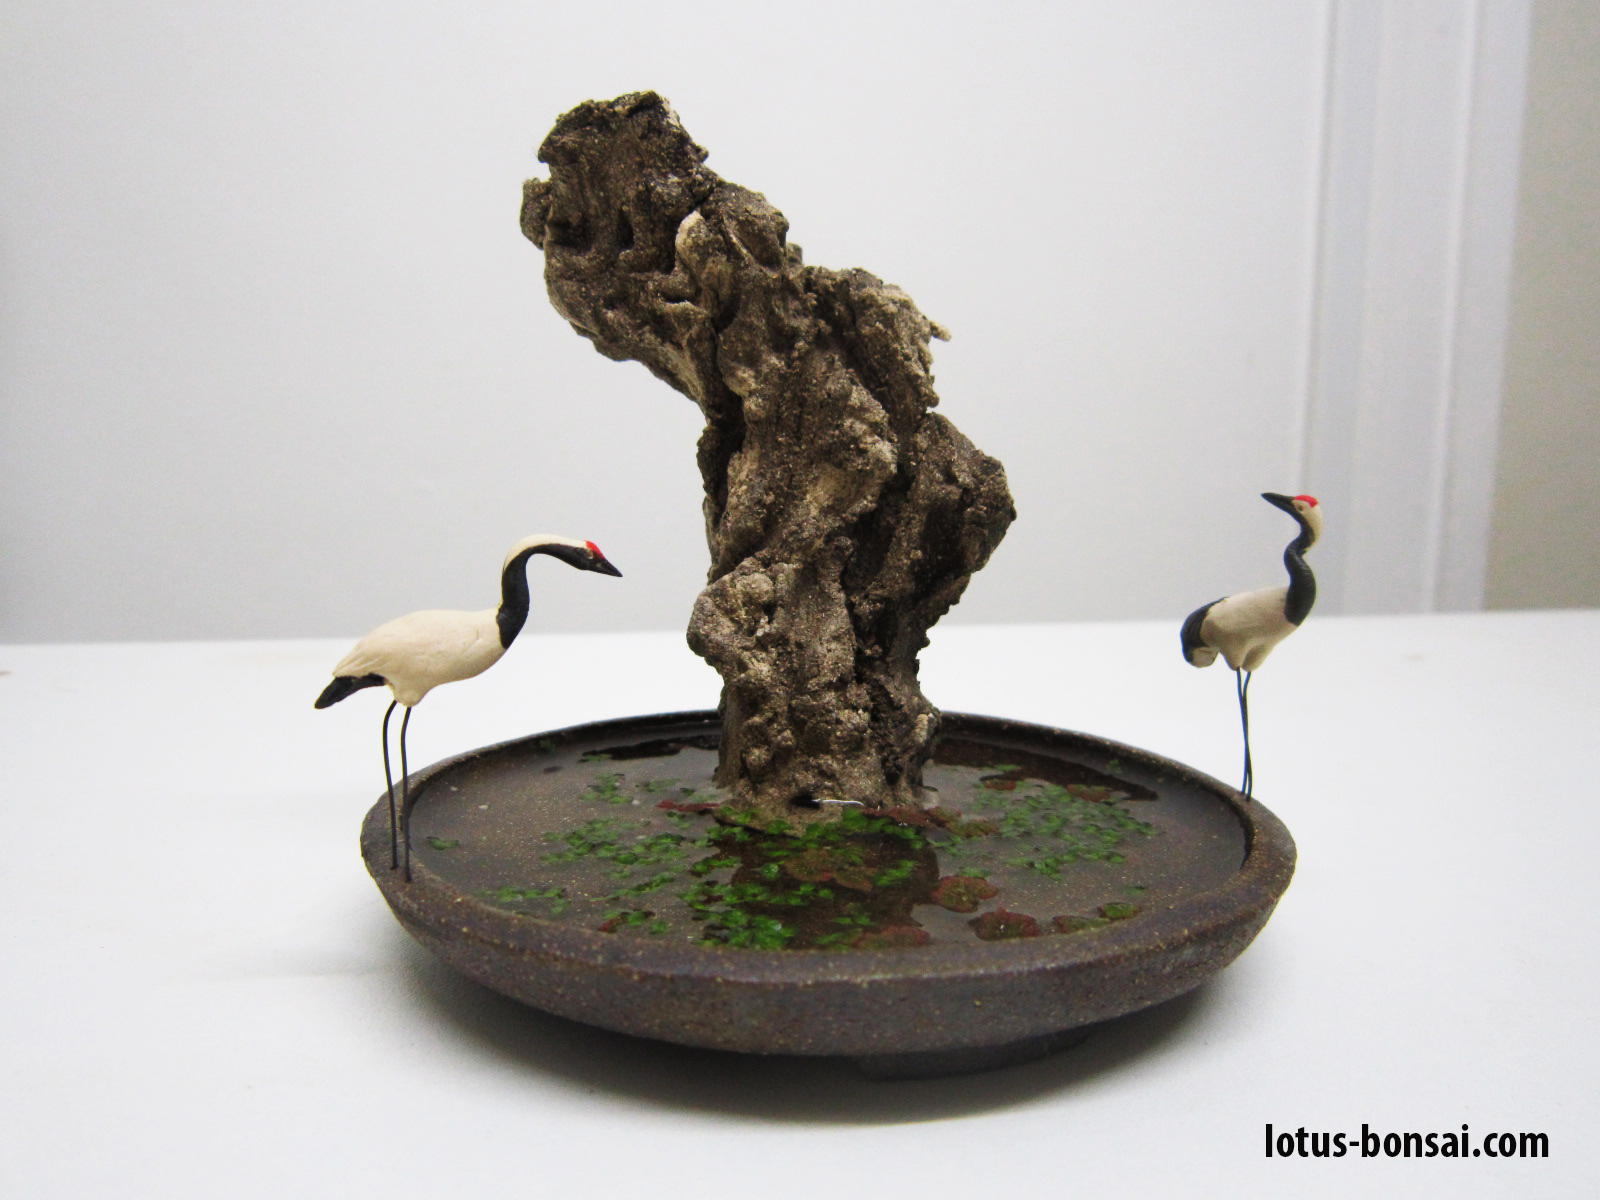 Bonsai Penjing Figurines Lotus Bonsai Studio